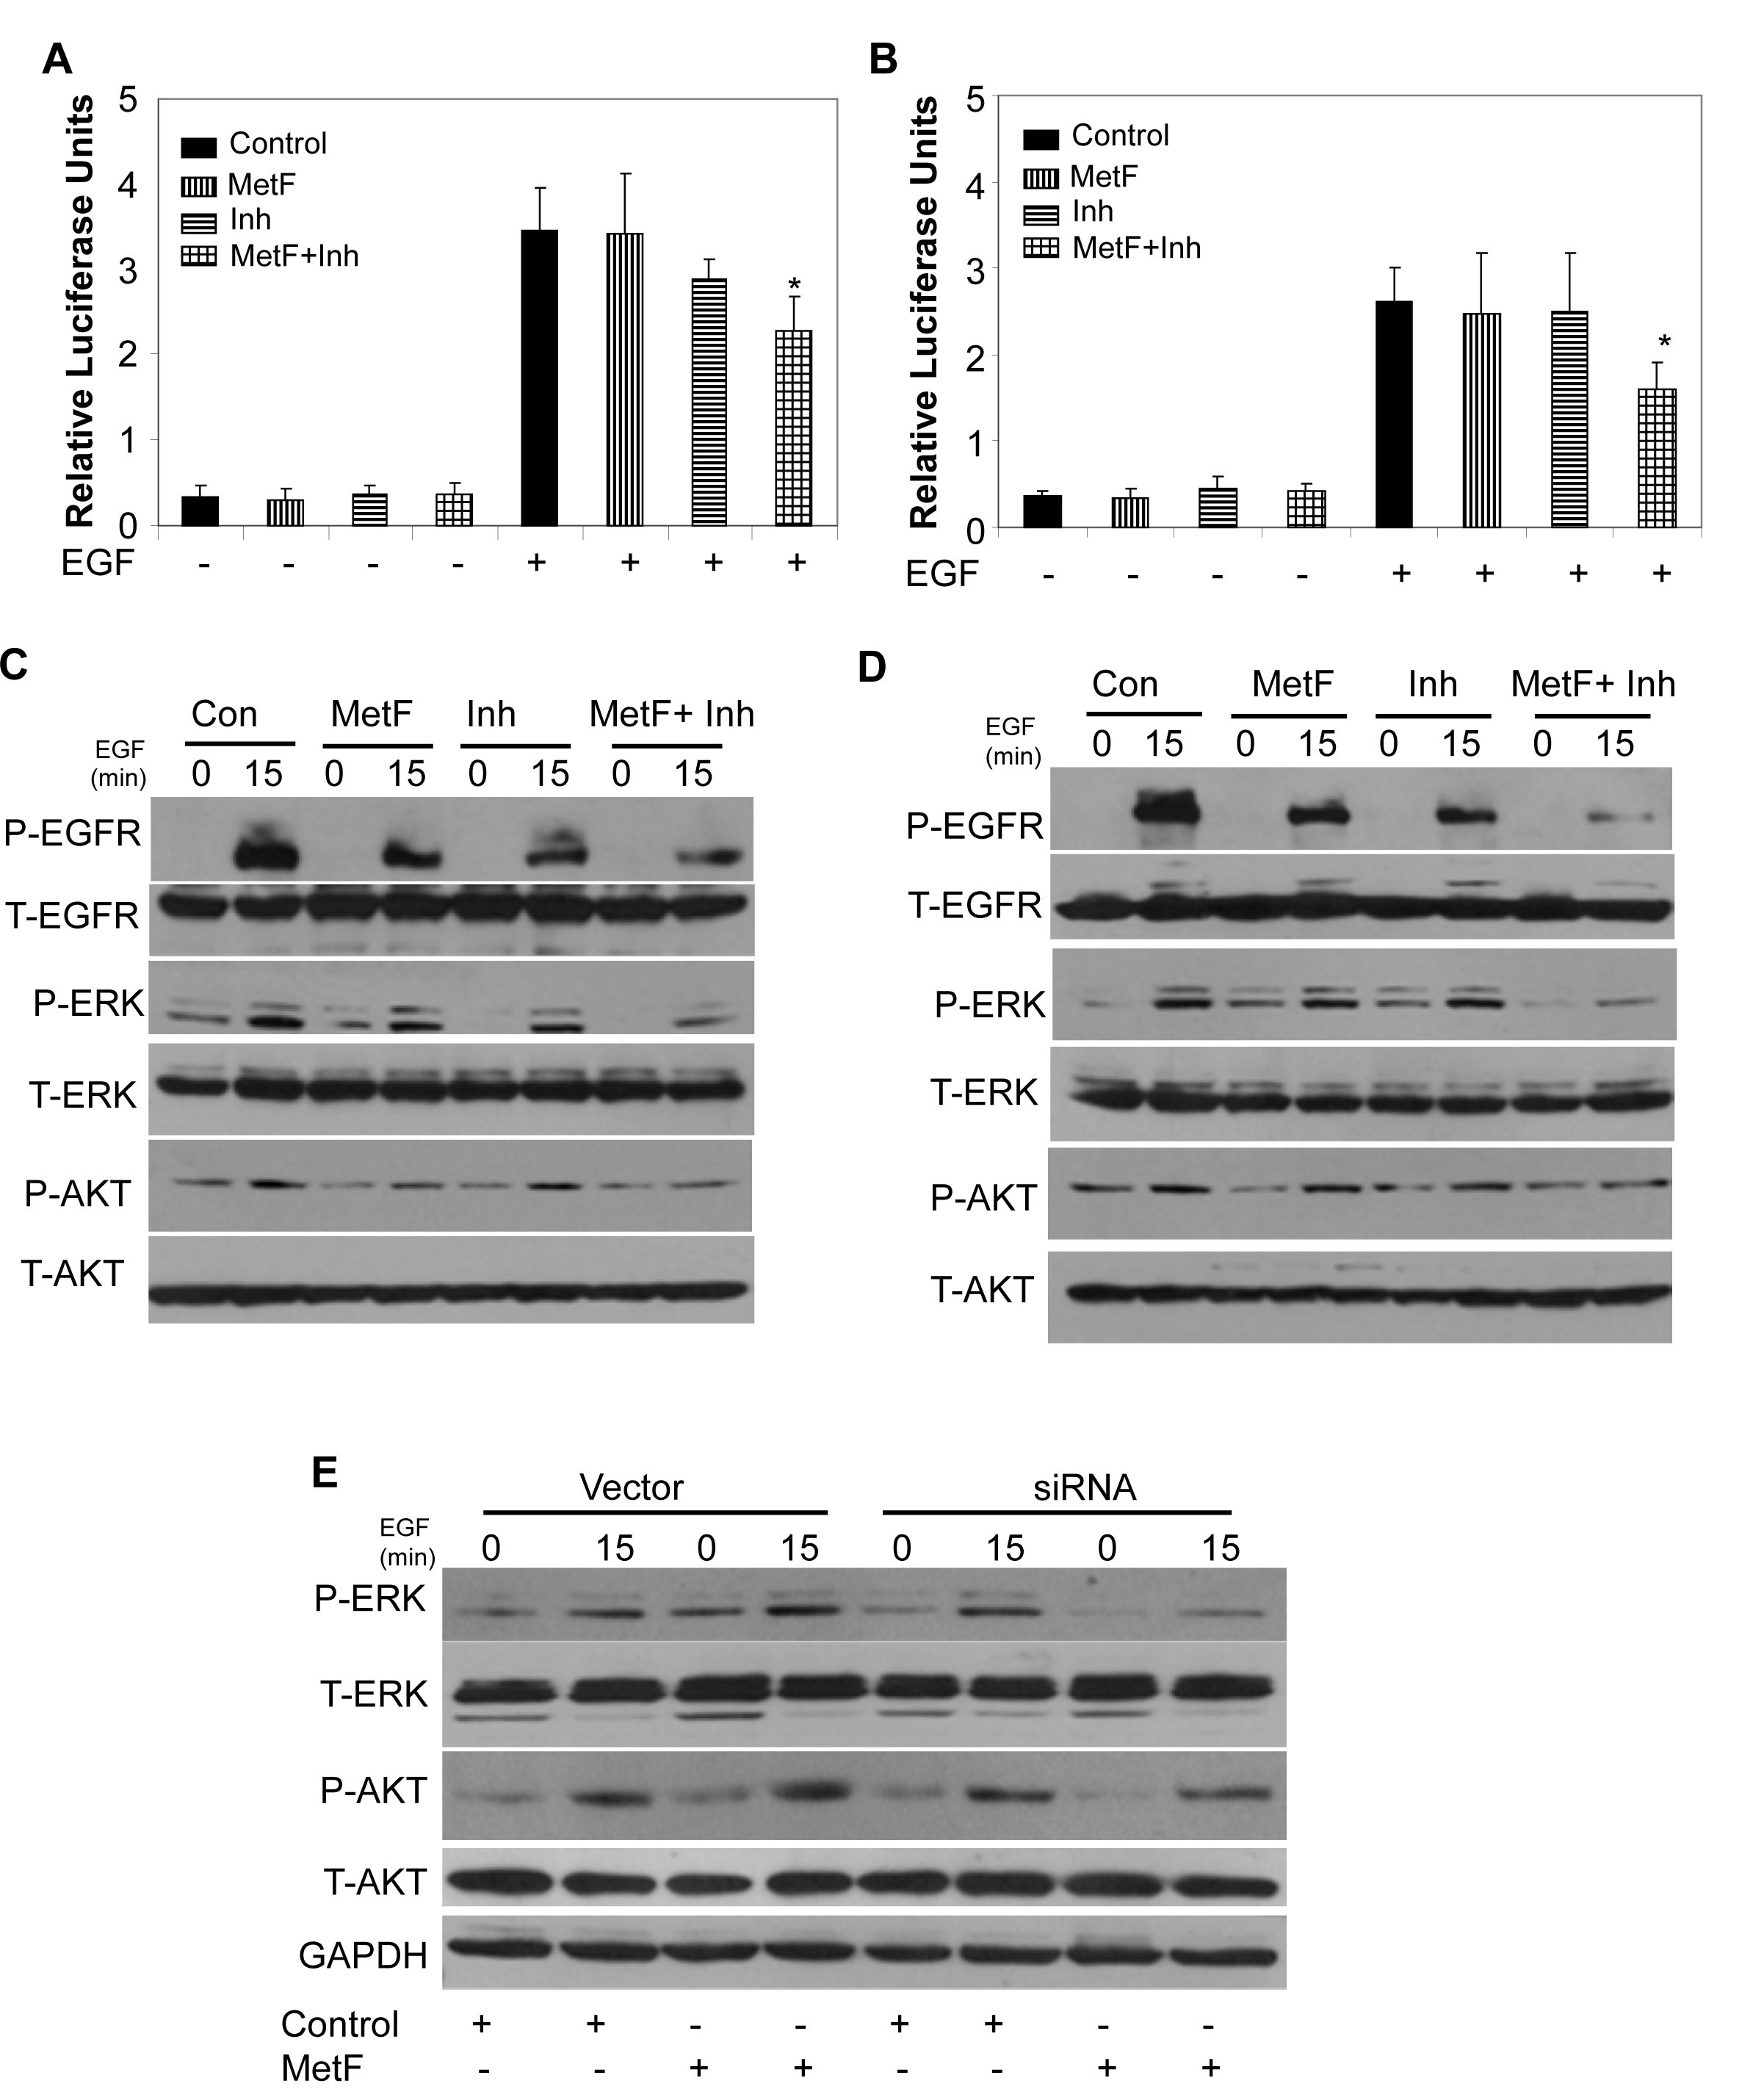 FAAH inhibition enhances Met-F-AEA mediated inhibition of EGFR signaling in NSCLC cell lines.